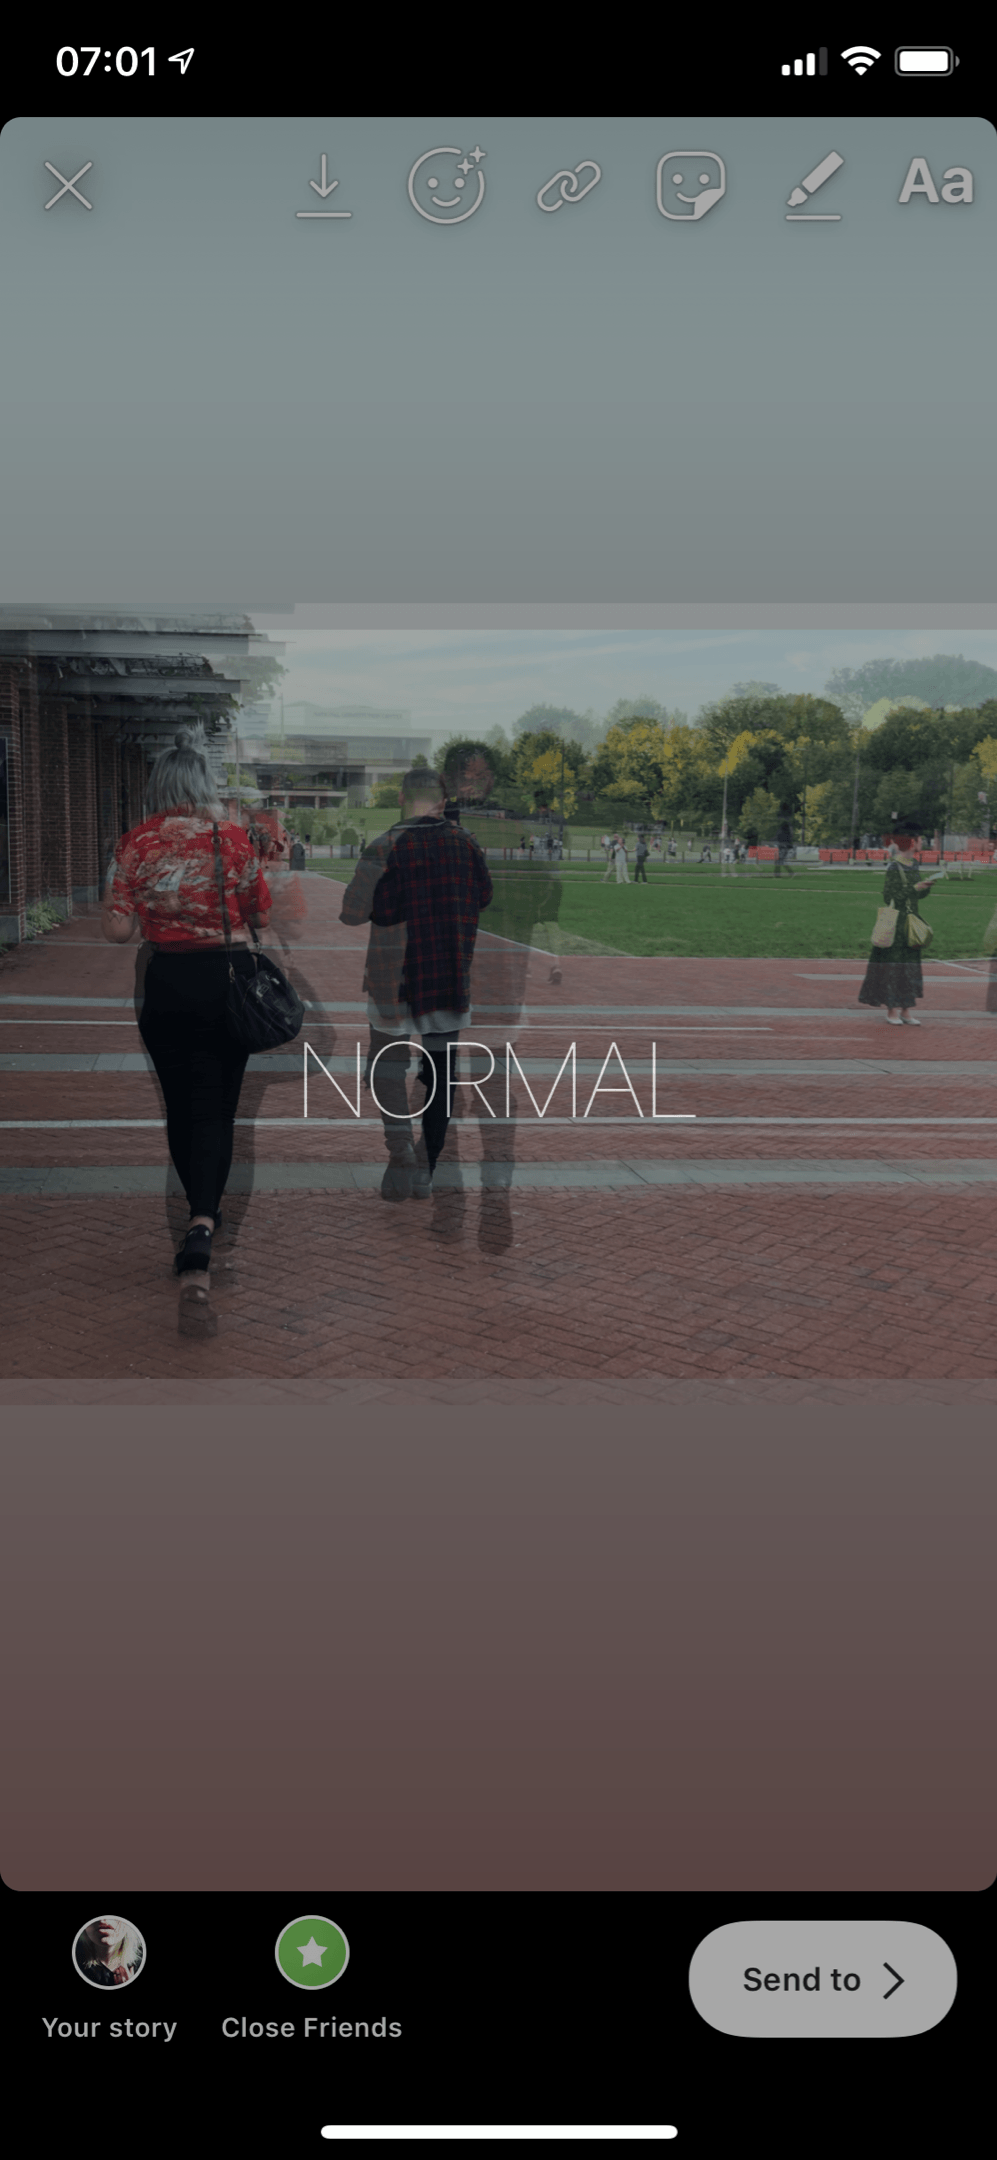 To return the Boomerang to a normal photo, simply press and hold the image for approximately 2 seconds until 'NORMAL' appears on the screen.